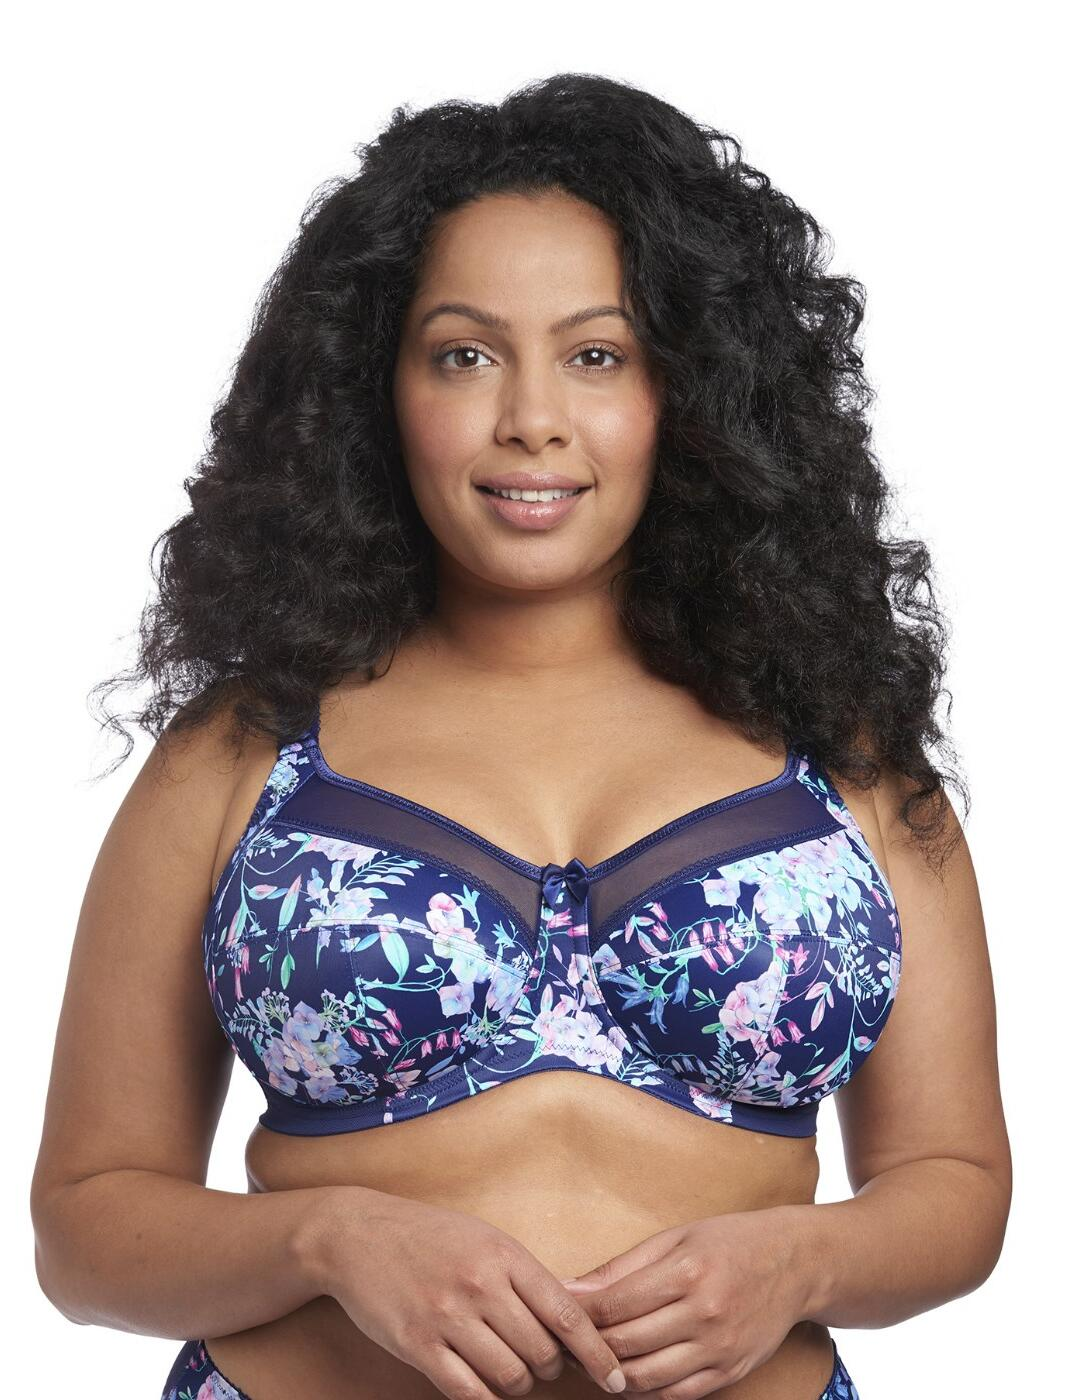 6162 Goddess Kayla Underwired Full Cup Bra - 6162 Bluebell